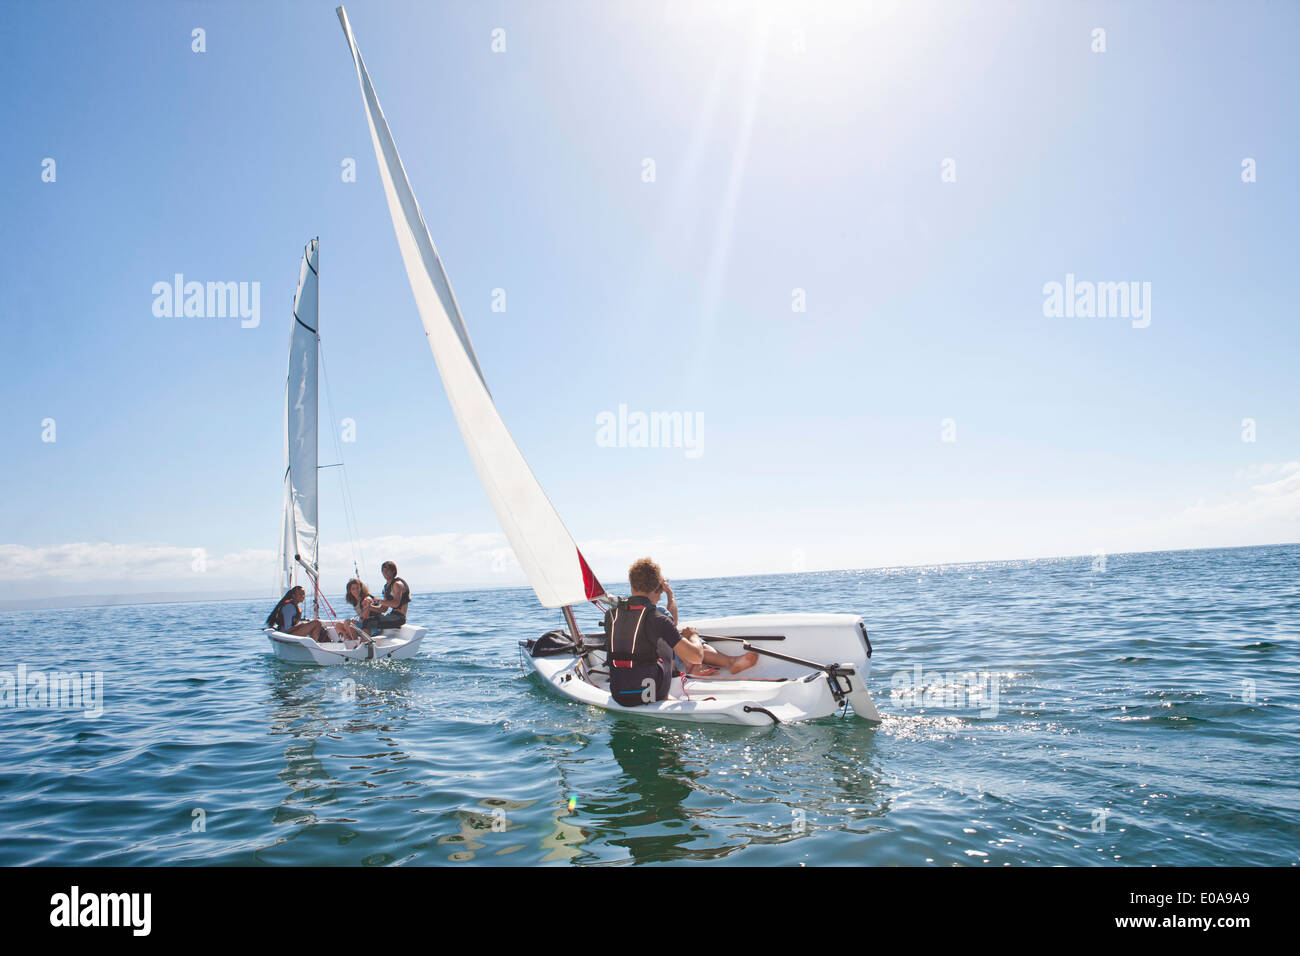 Young adult friends racing each other in sailboats - Stock Image